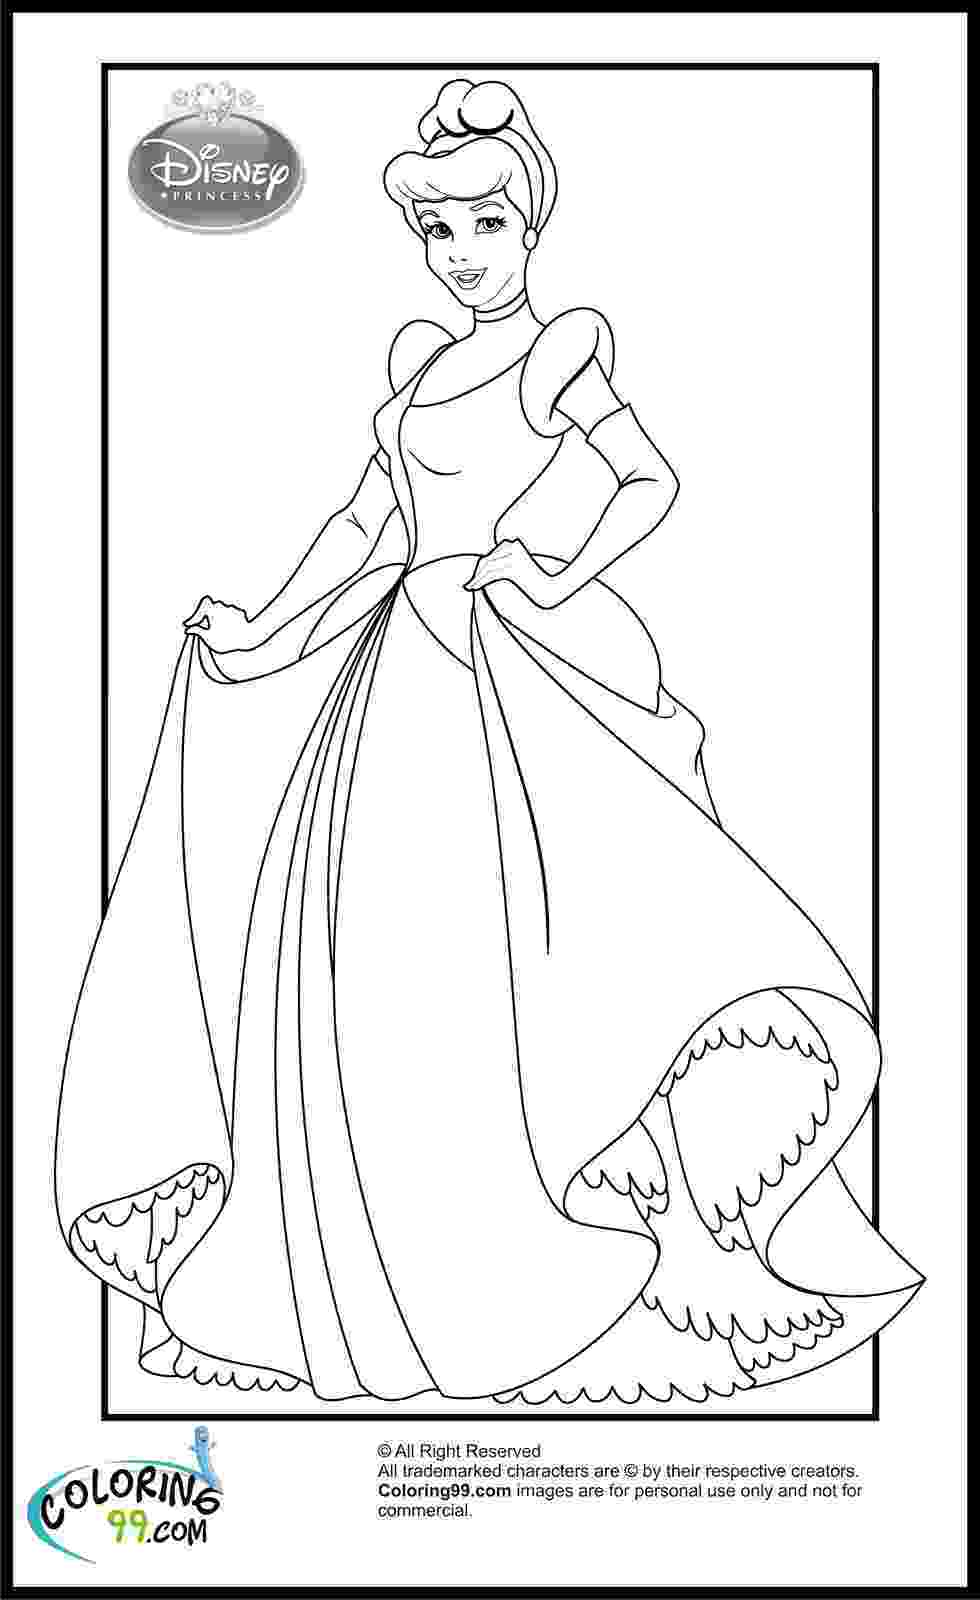 printable coloring pages for disney princess disney coloring pages momjunction princess coloring printable disney for pages